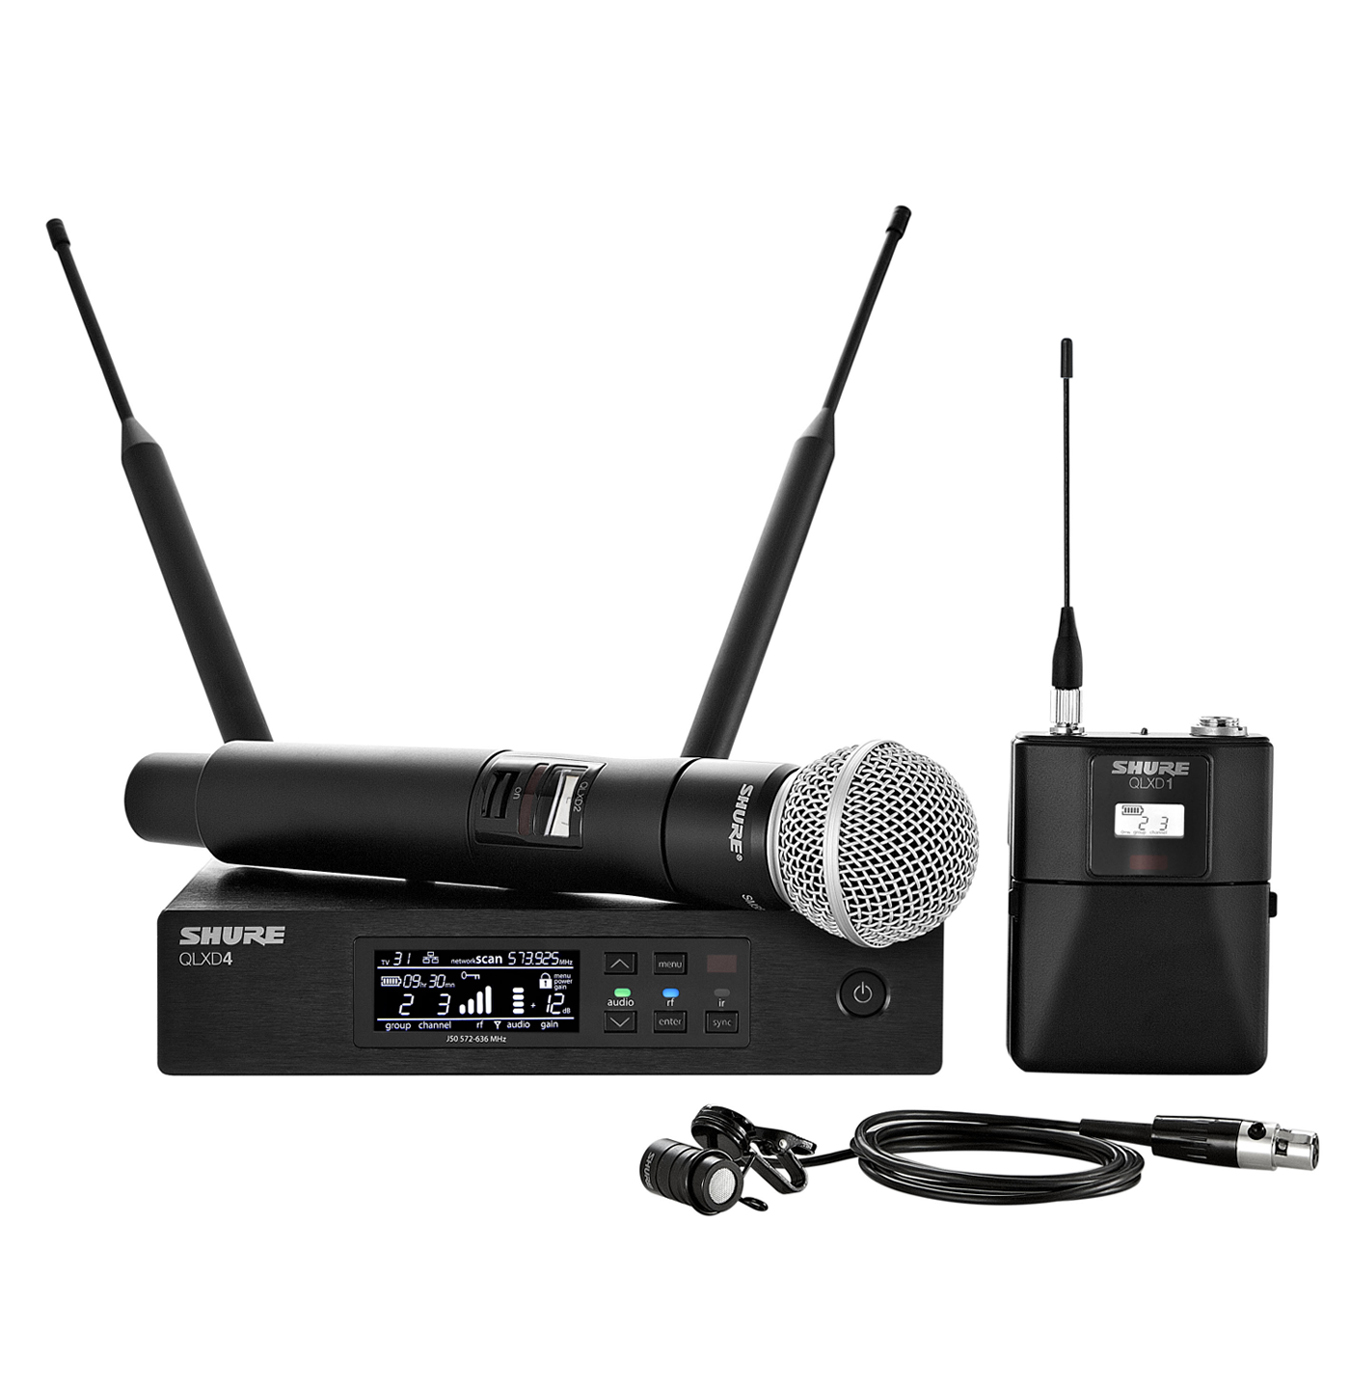 shure qlxd124 85 handheld lavalier wireless microphone system. Black Bedroom Furniture Sets. Home Design Ideas